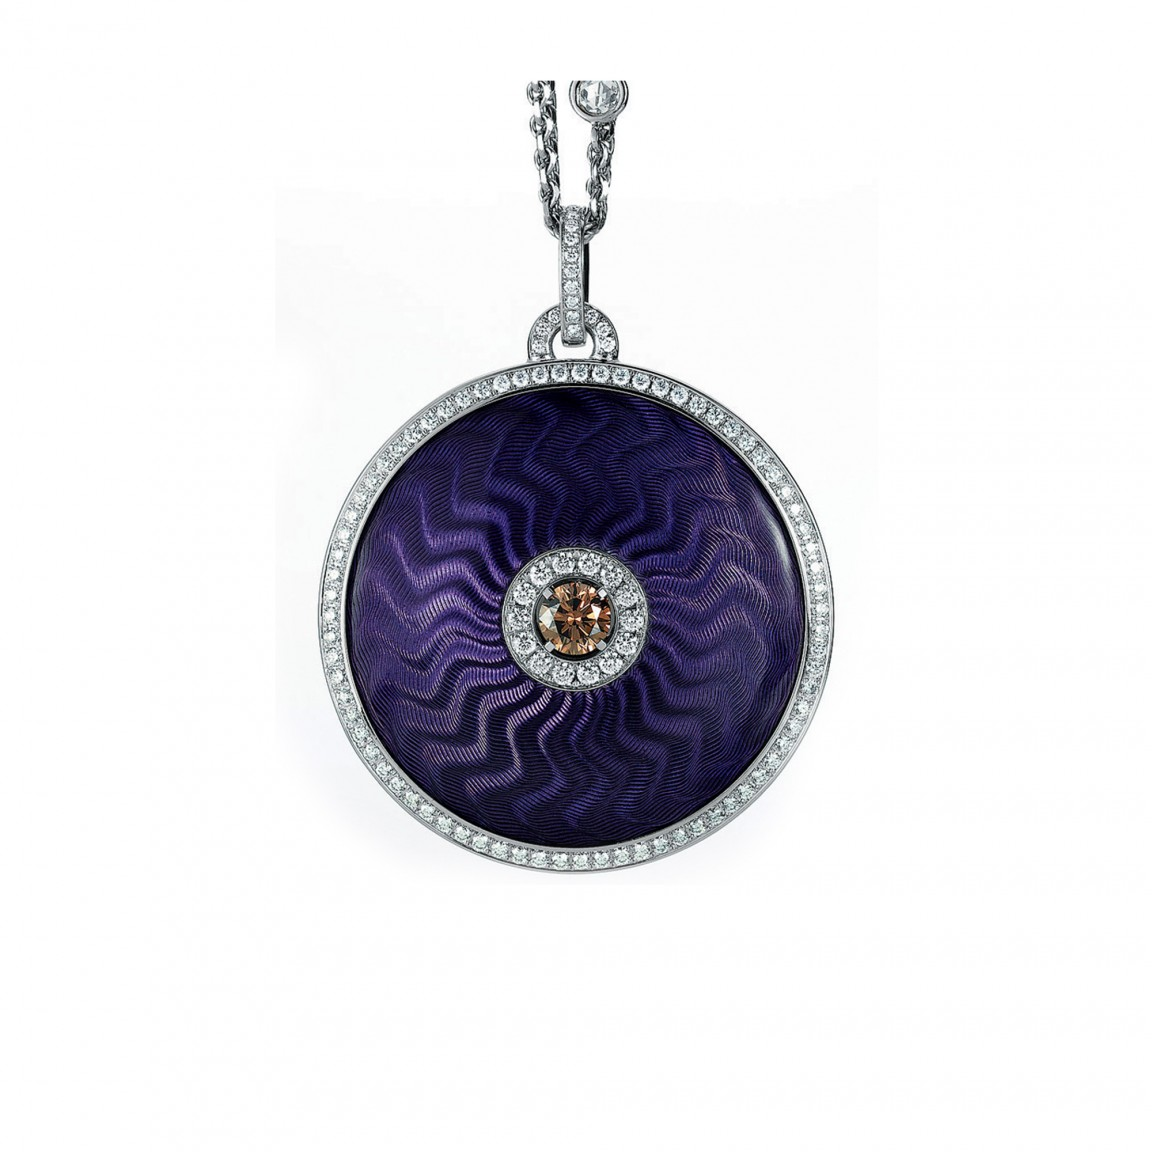 Victor Mayer Opera Pendant Necklace